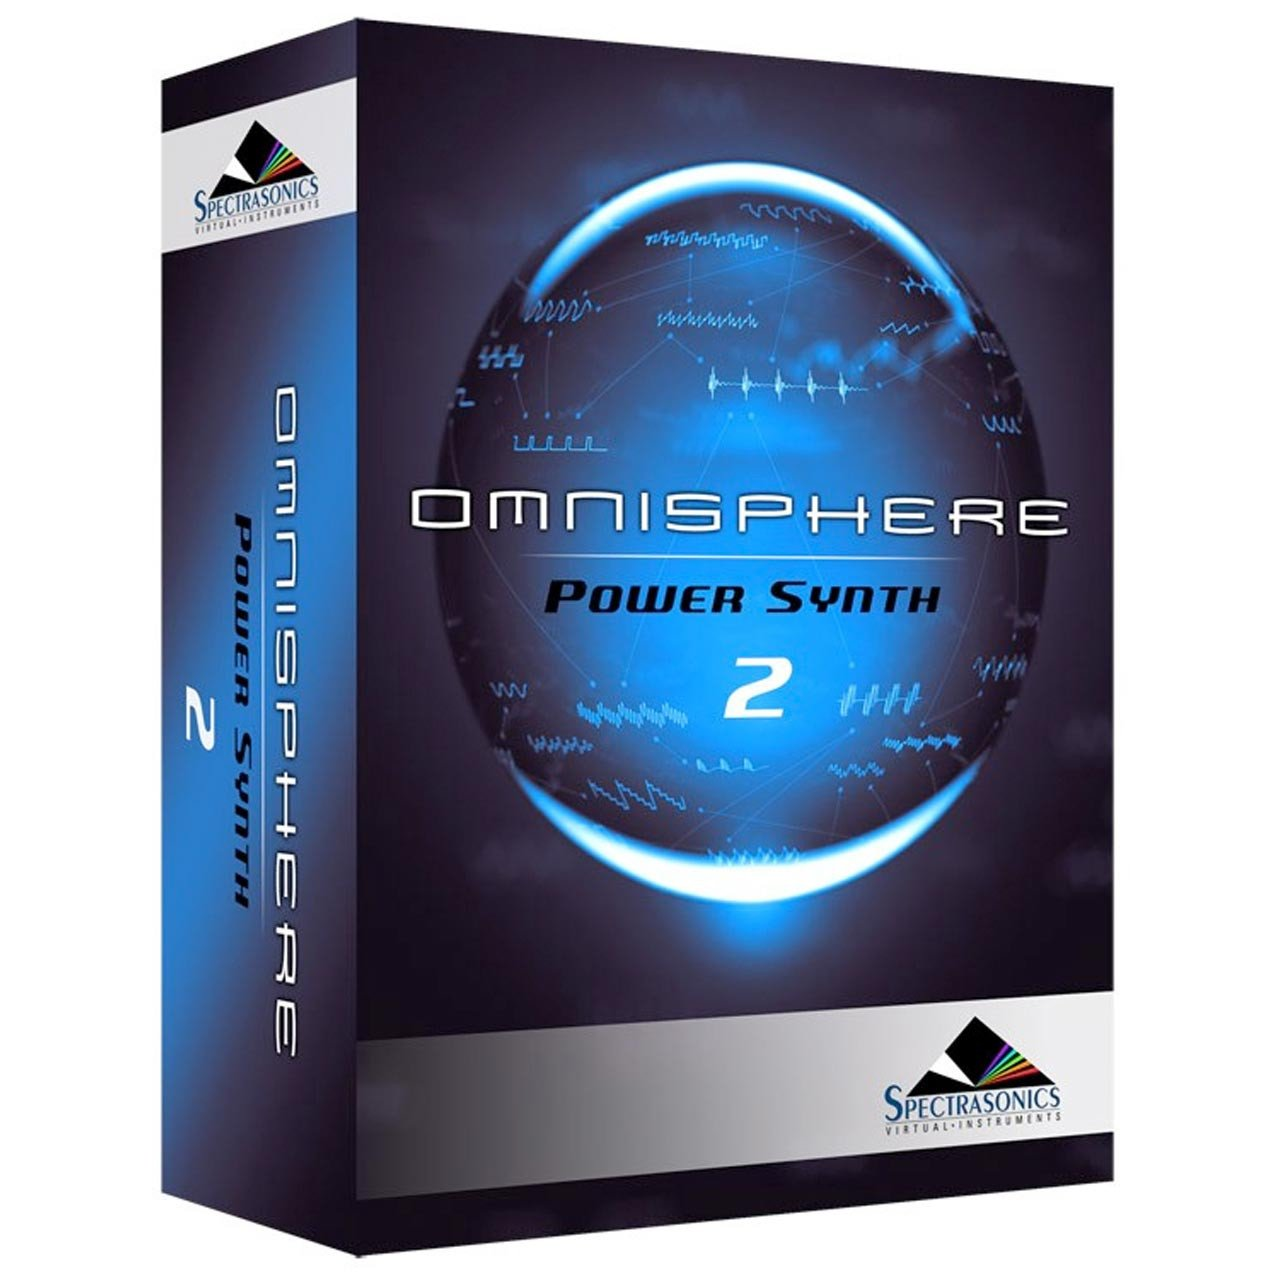 Software Instruments - Spectrasonics Omnisphere 2 Power Synth